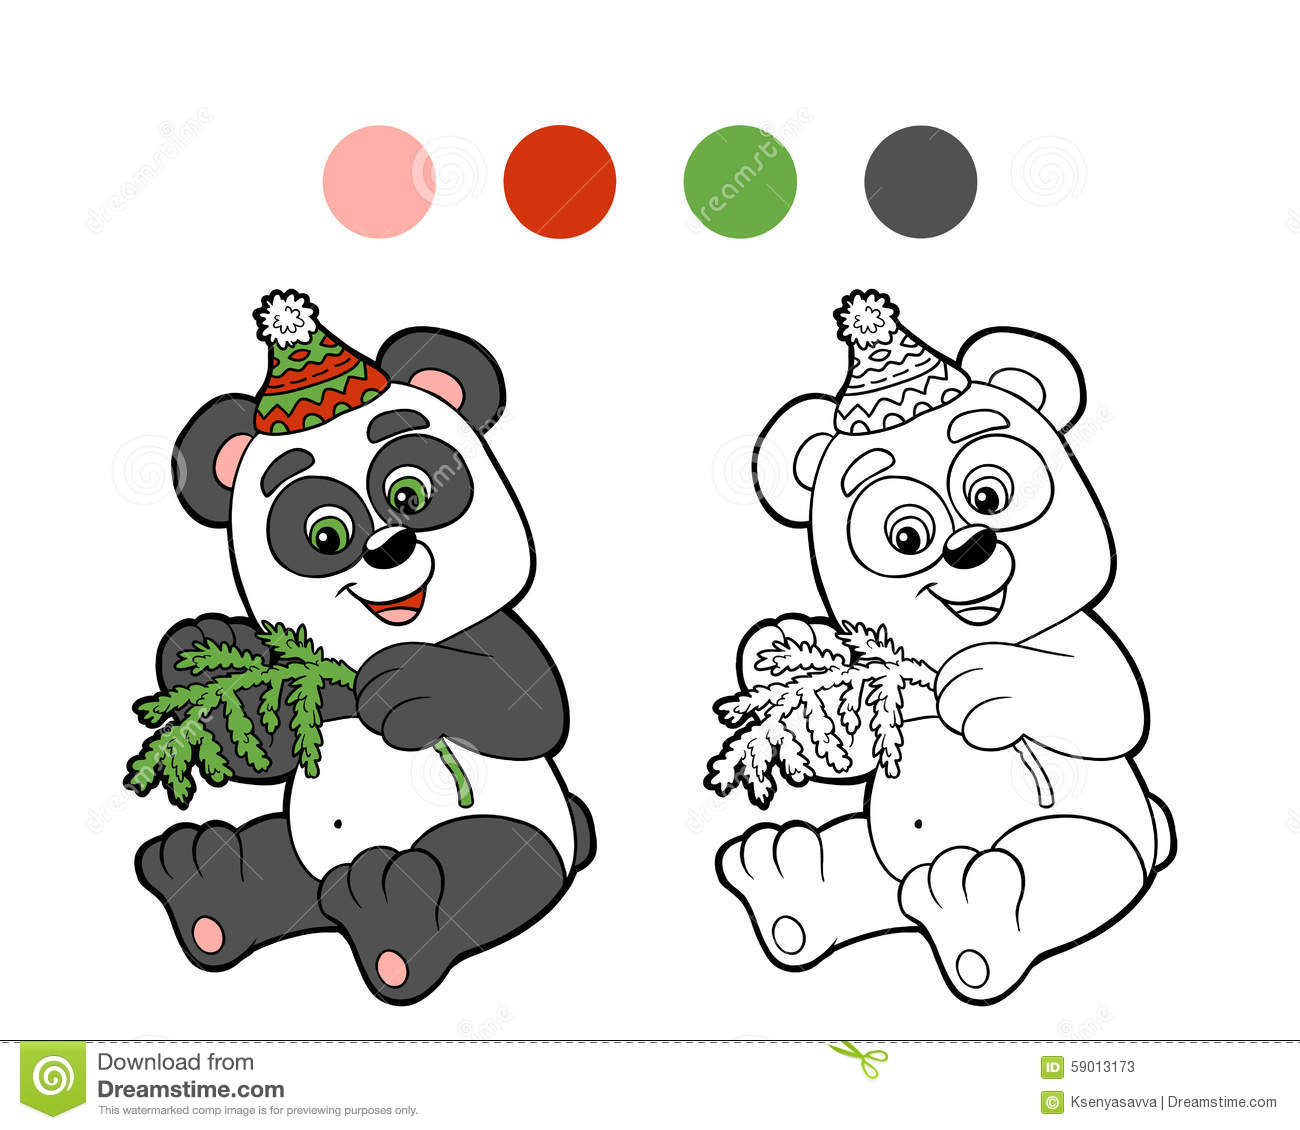 Mr Snowman On Christmas Touching A Snowflake Coloring Page: Coloring Book: Christmas Winter Panda Stock Vector